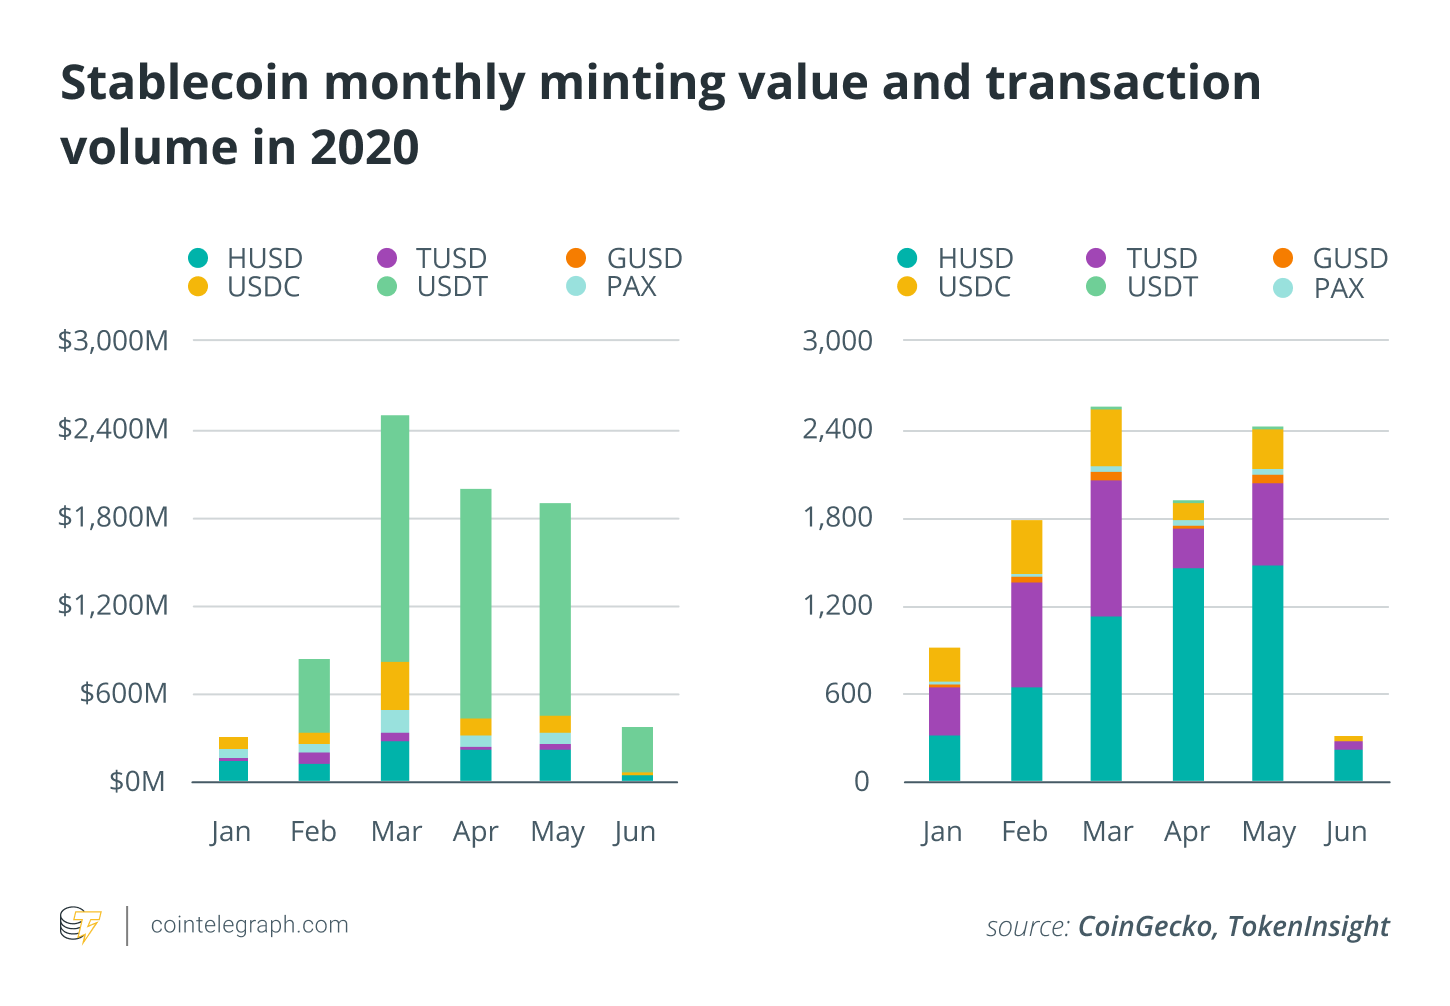 Stablecoin monthly minting value and transaction volume in 2020